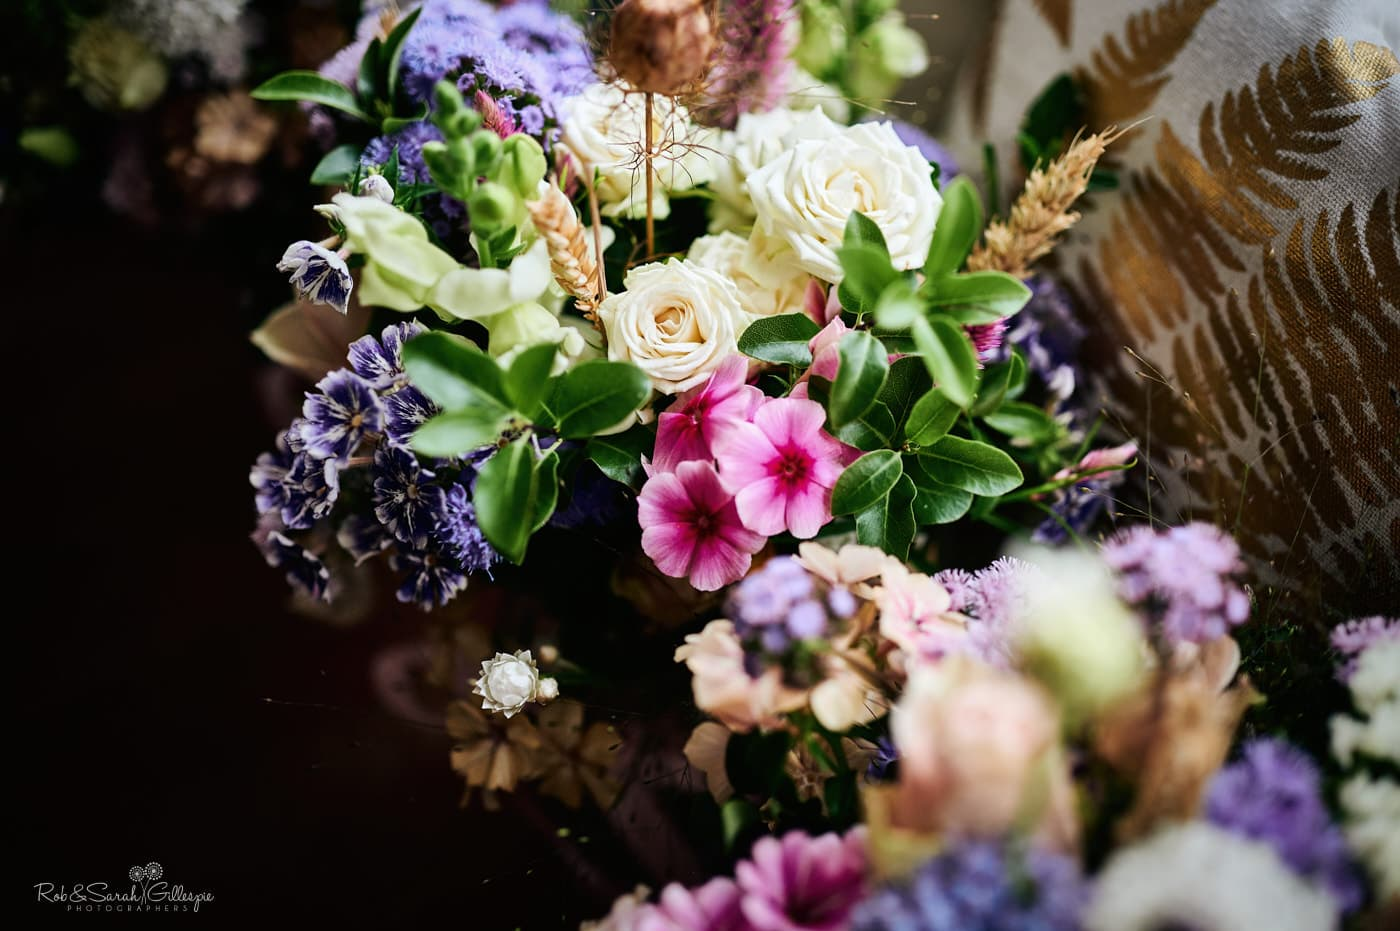 Colourful wedding flowers in beautiful light